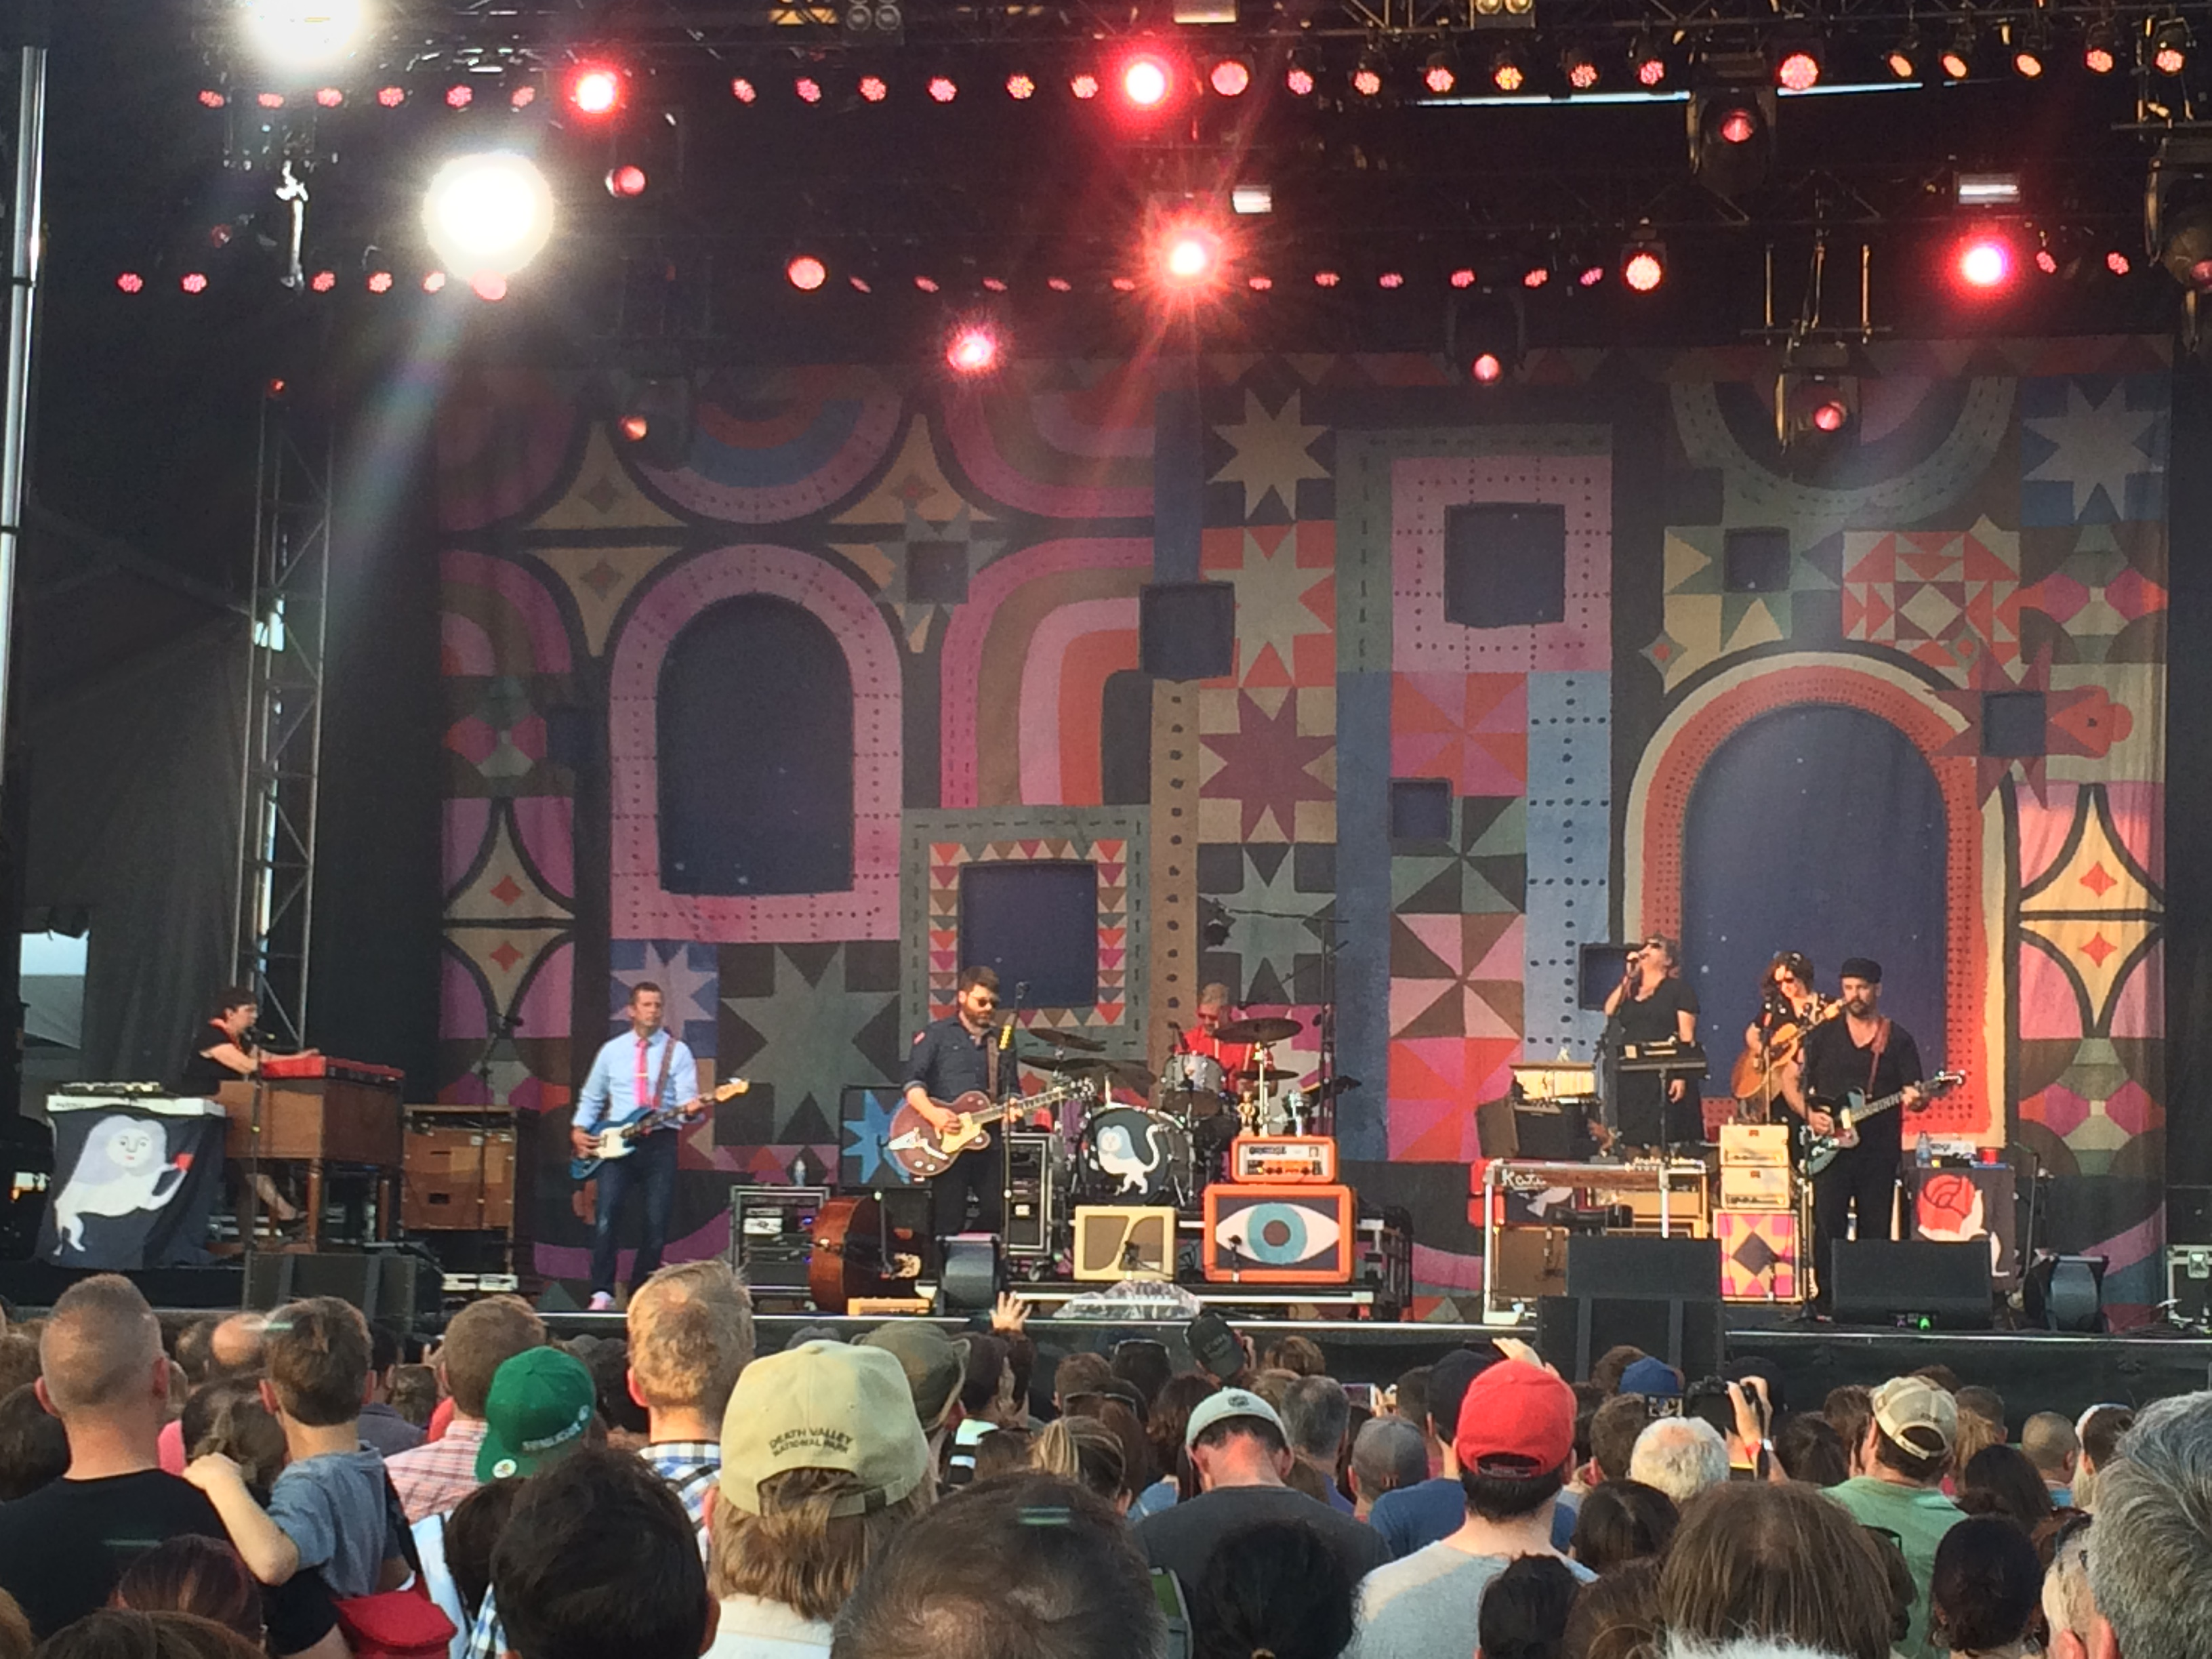 Highlights from Day Five of Ottawa Bluesfest.